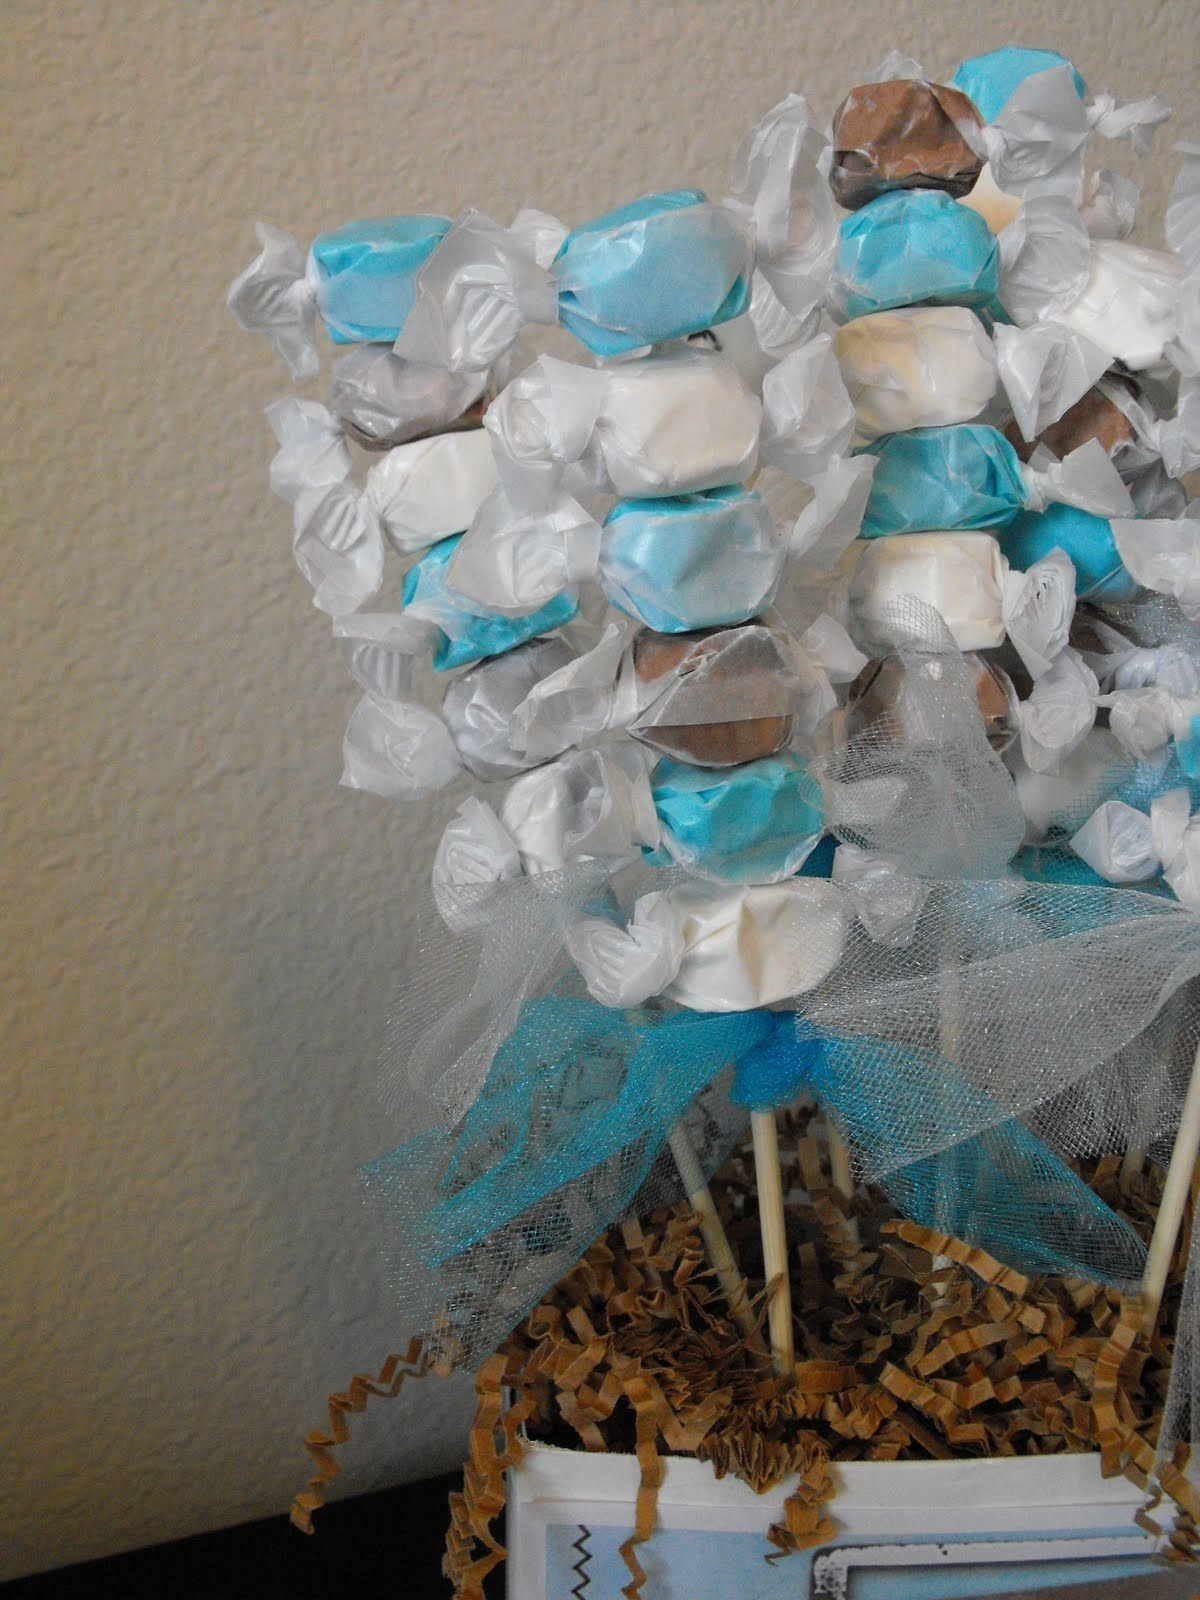 10 Lovable Homemade Baby Shower Party Favors Ideas homemade baby shower centerpieces little of this a little of that 2021